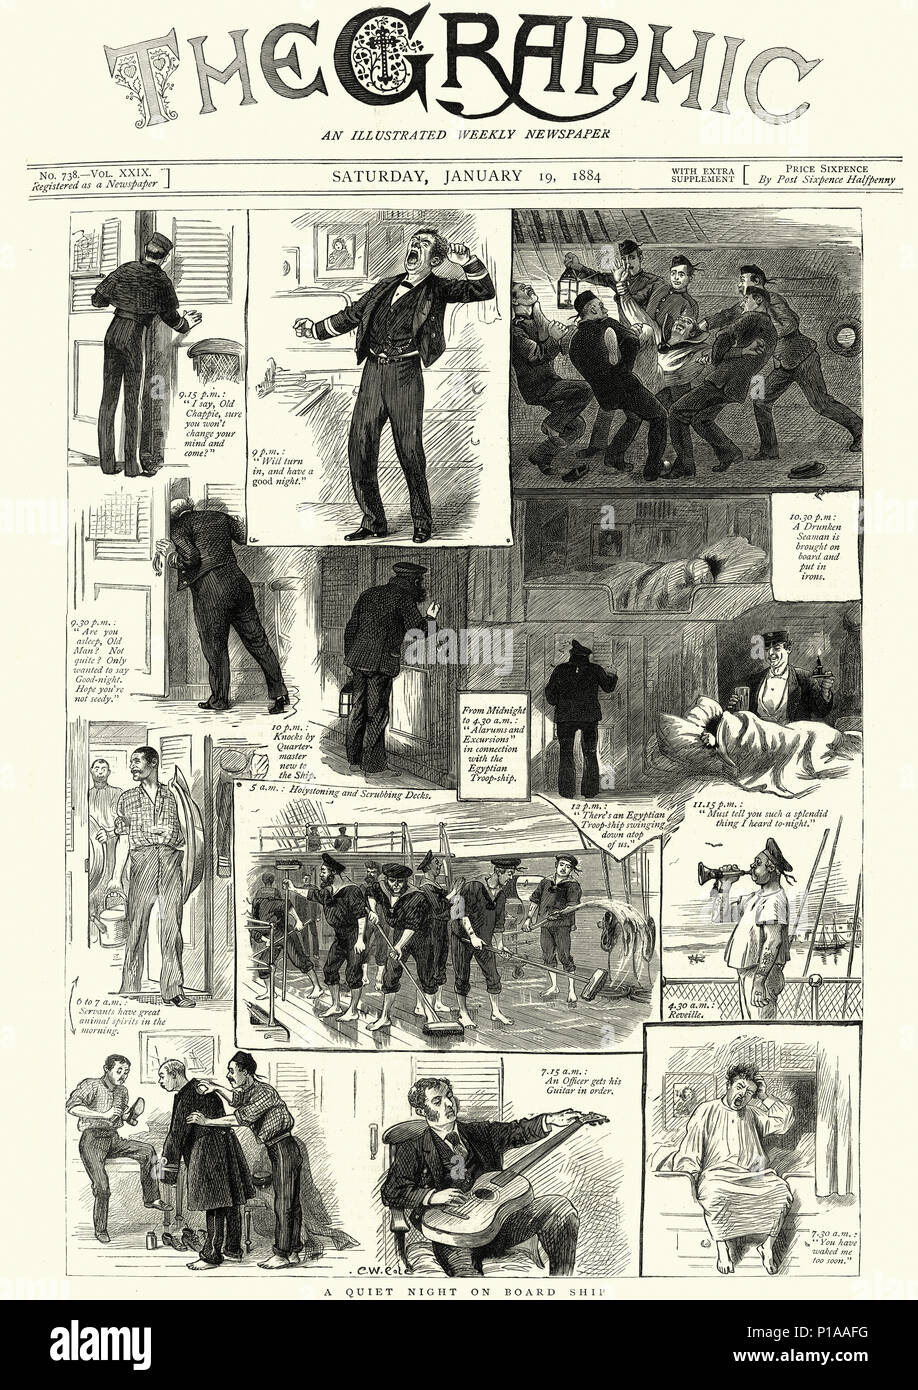 Front page of the Graphic newspaper, January 19th, 1884, Quiet night on board a Royal Navy Warship - Stock Image